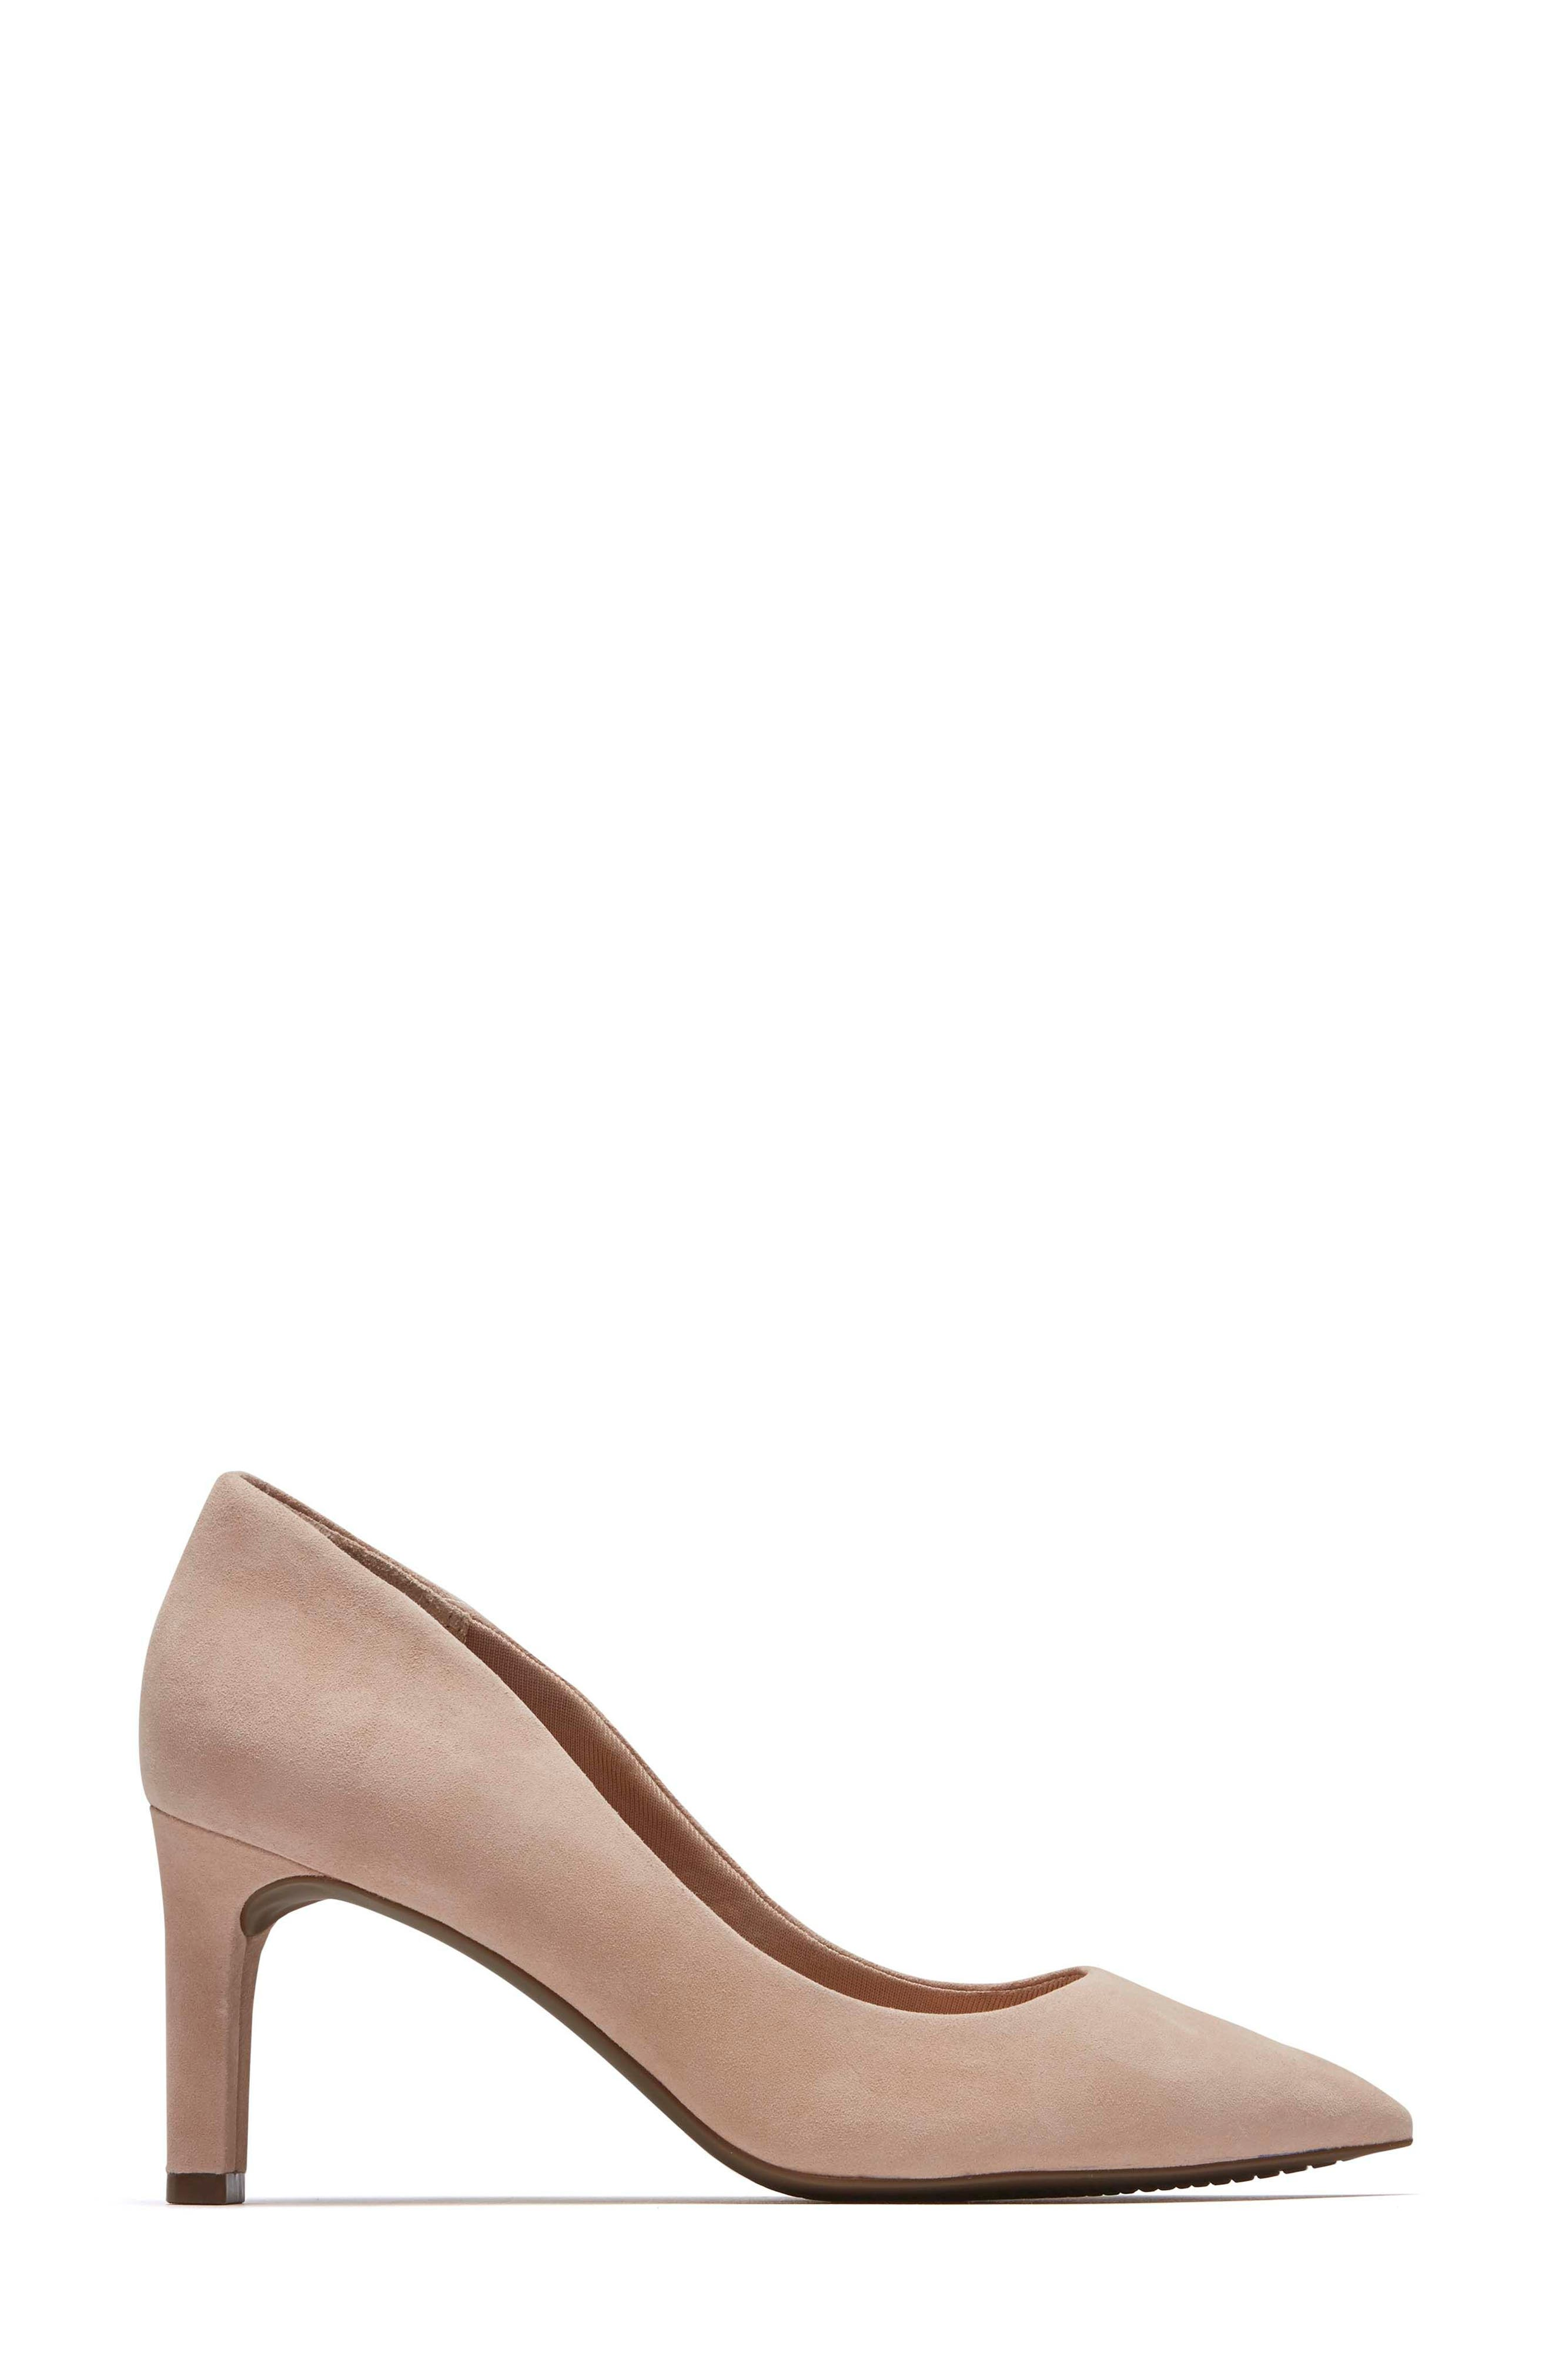 Total Motion Luxe Valerie Pump,                             Alternate thumbnail 3, color,                             BLUSH SUEDE